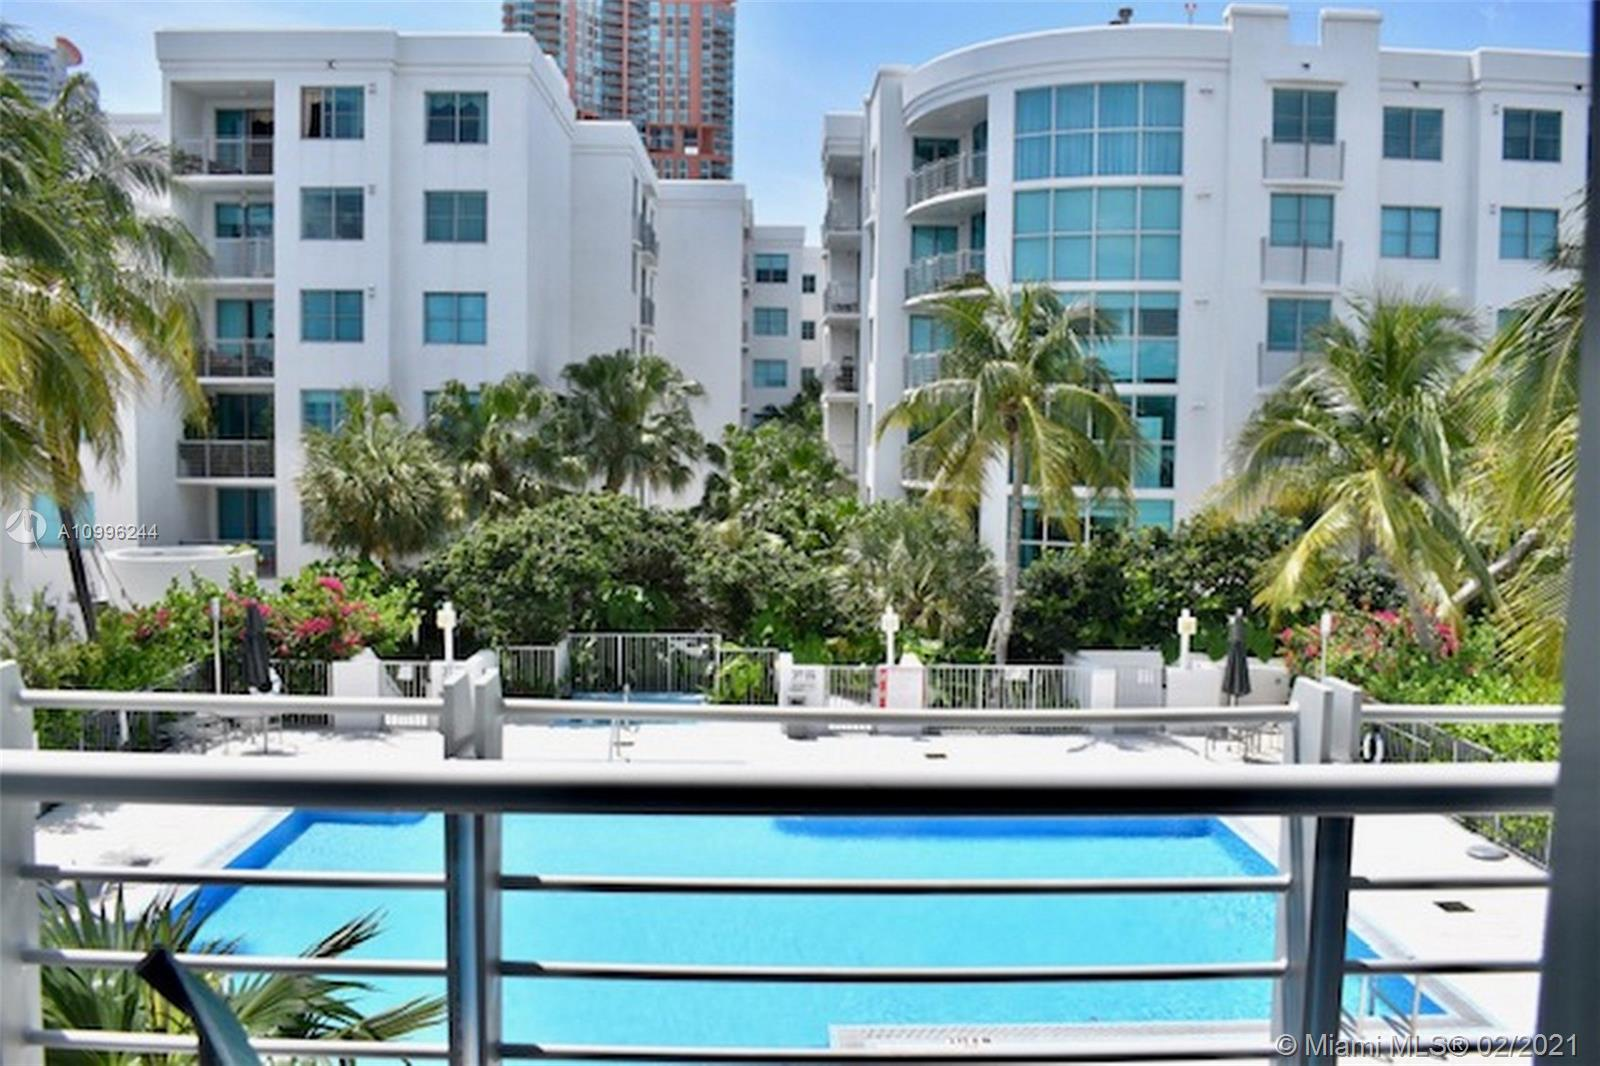 Cosmopolitan #2412 - 110 Washington Ave #2412, Miami Beach, FL 33139